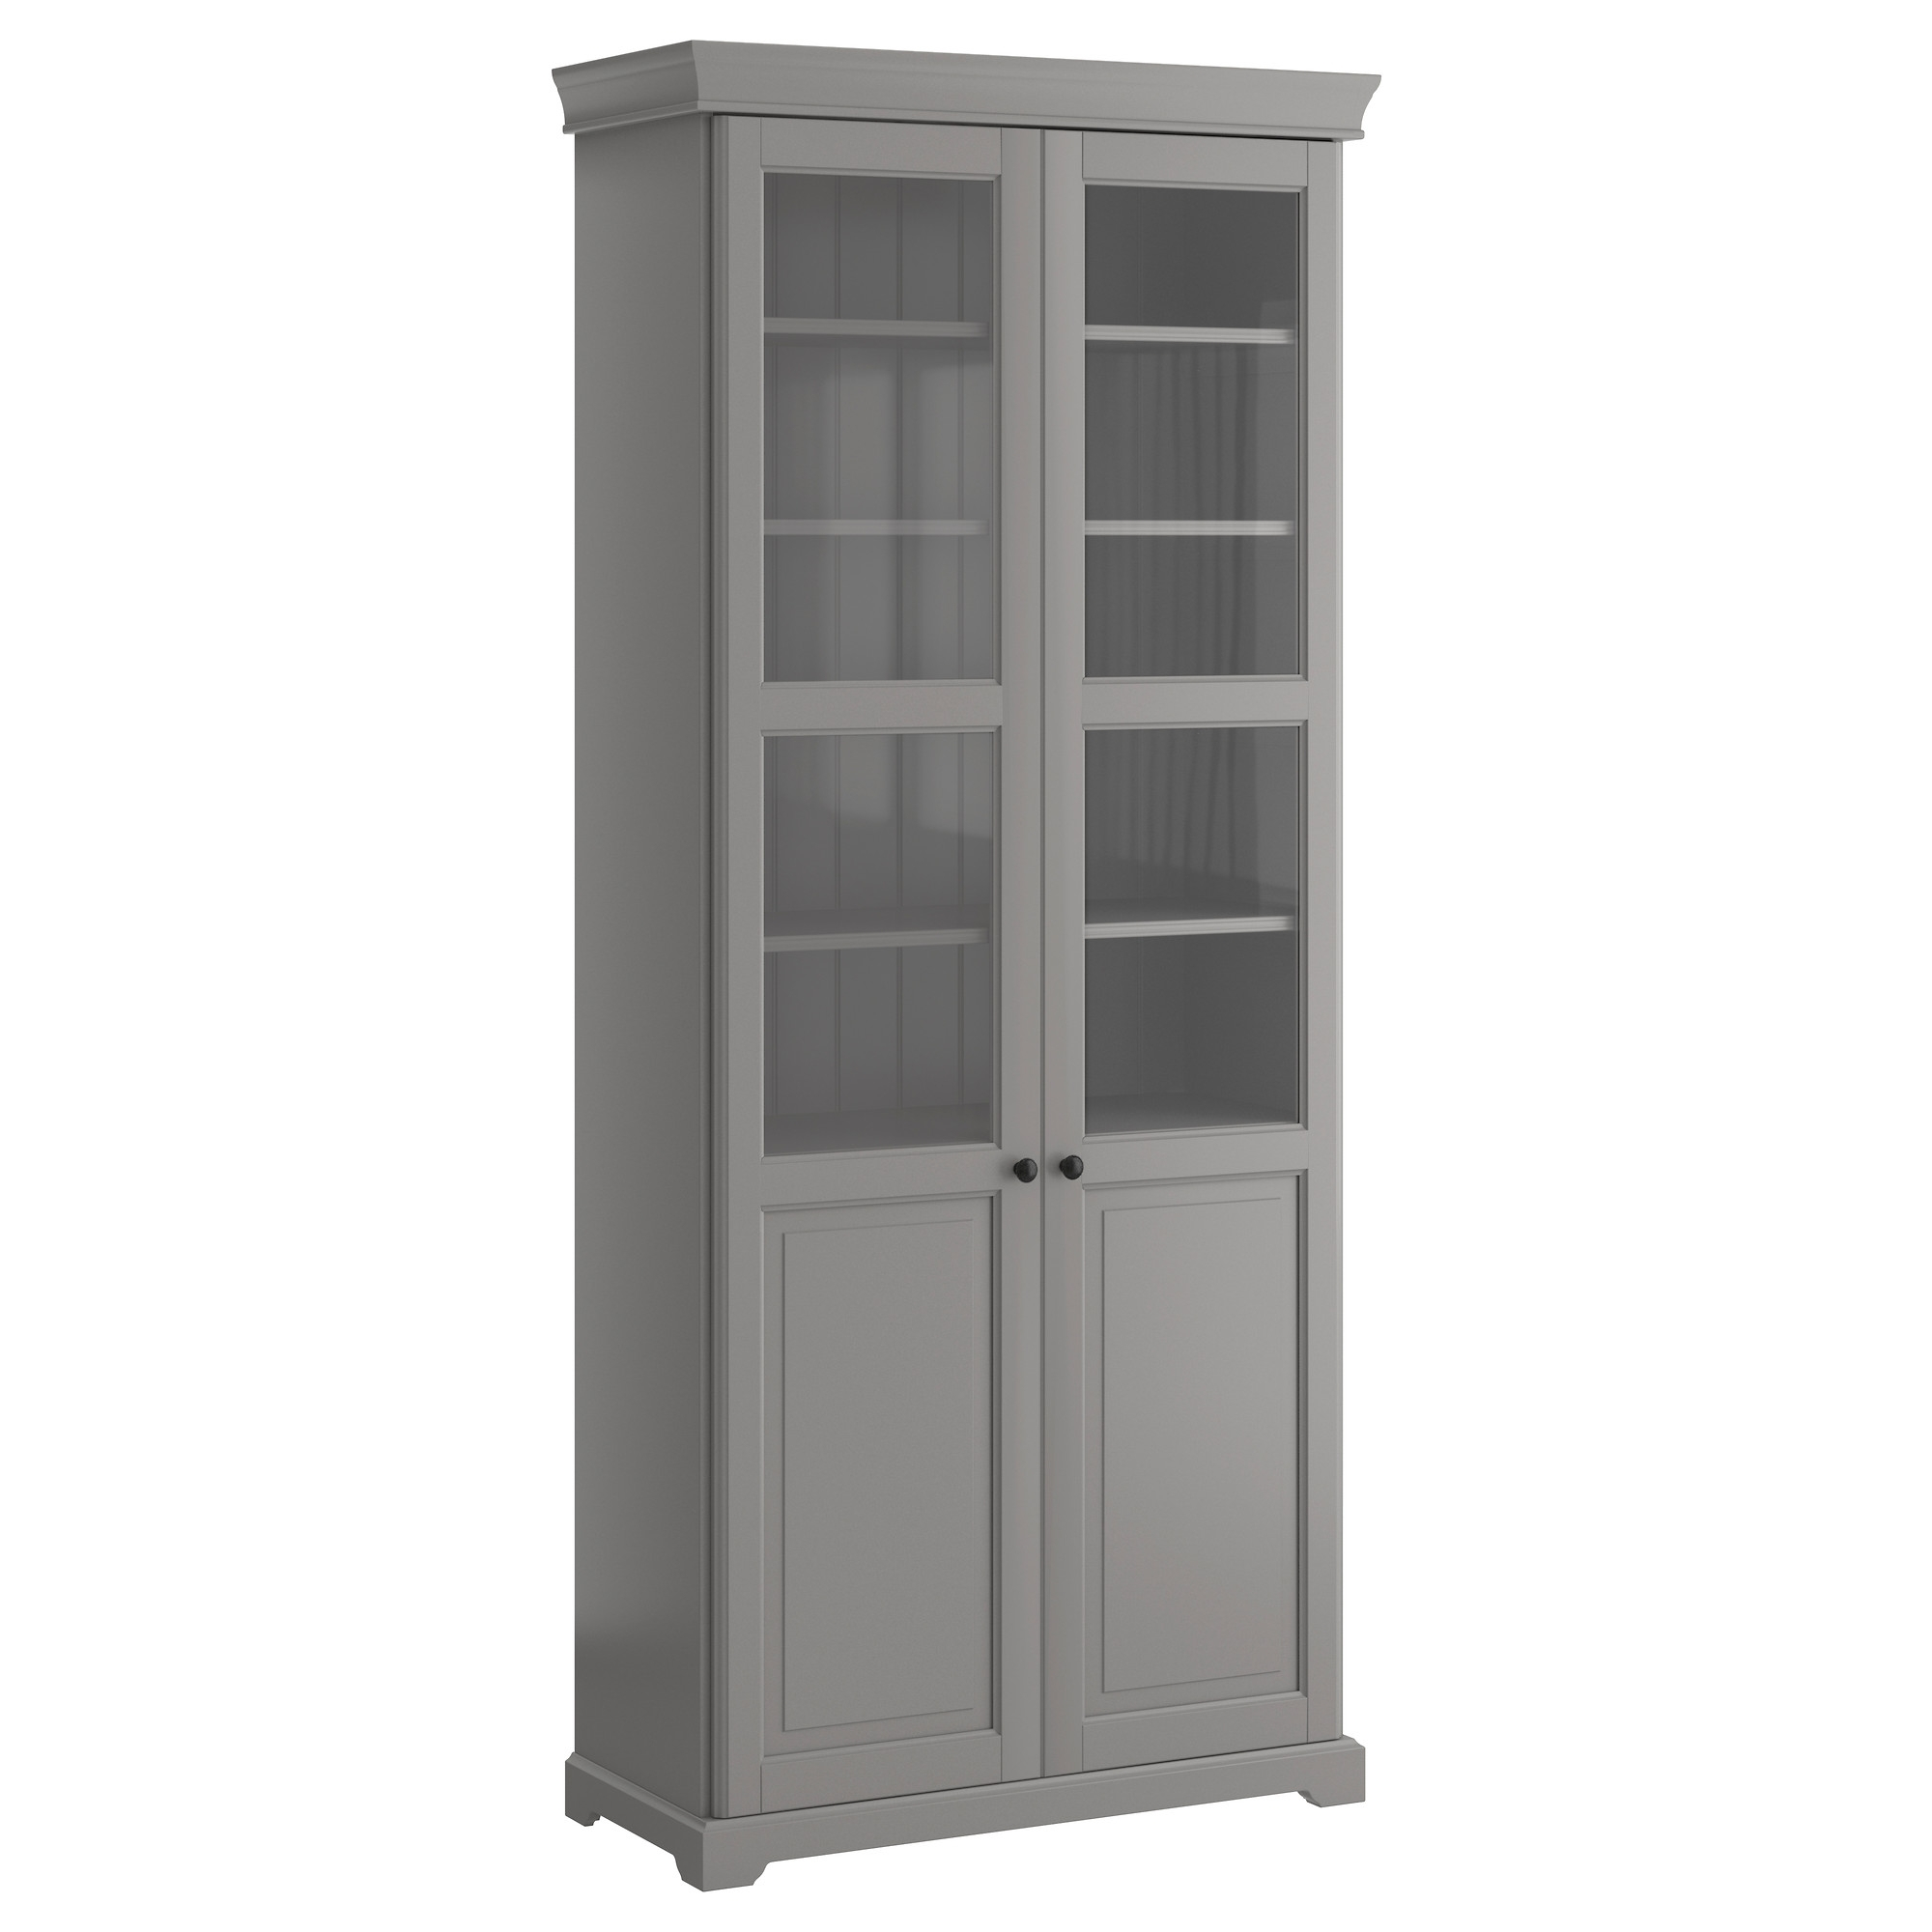 Most Up To Date Liatorp Bookcase With Glass Doors – White – Ikea With Regard To White Bookcases With Glass Doors (View 7 of 15)